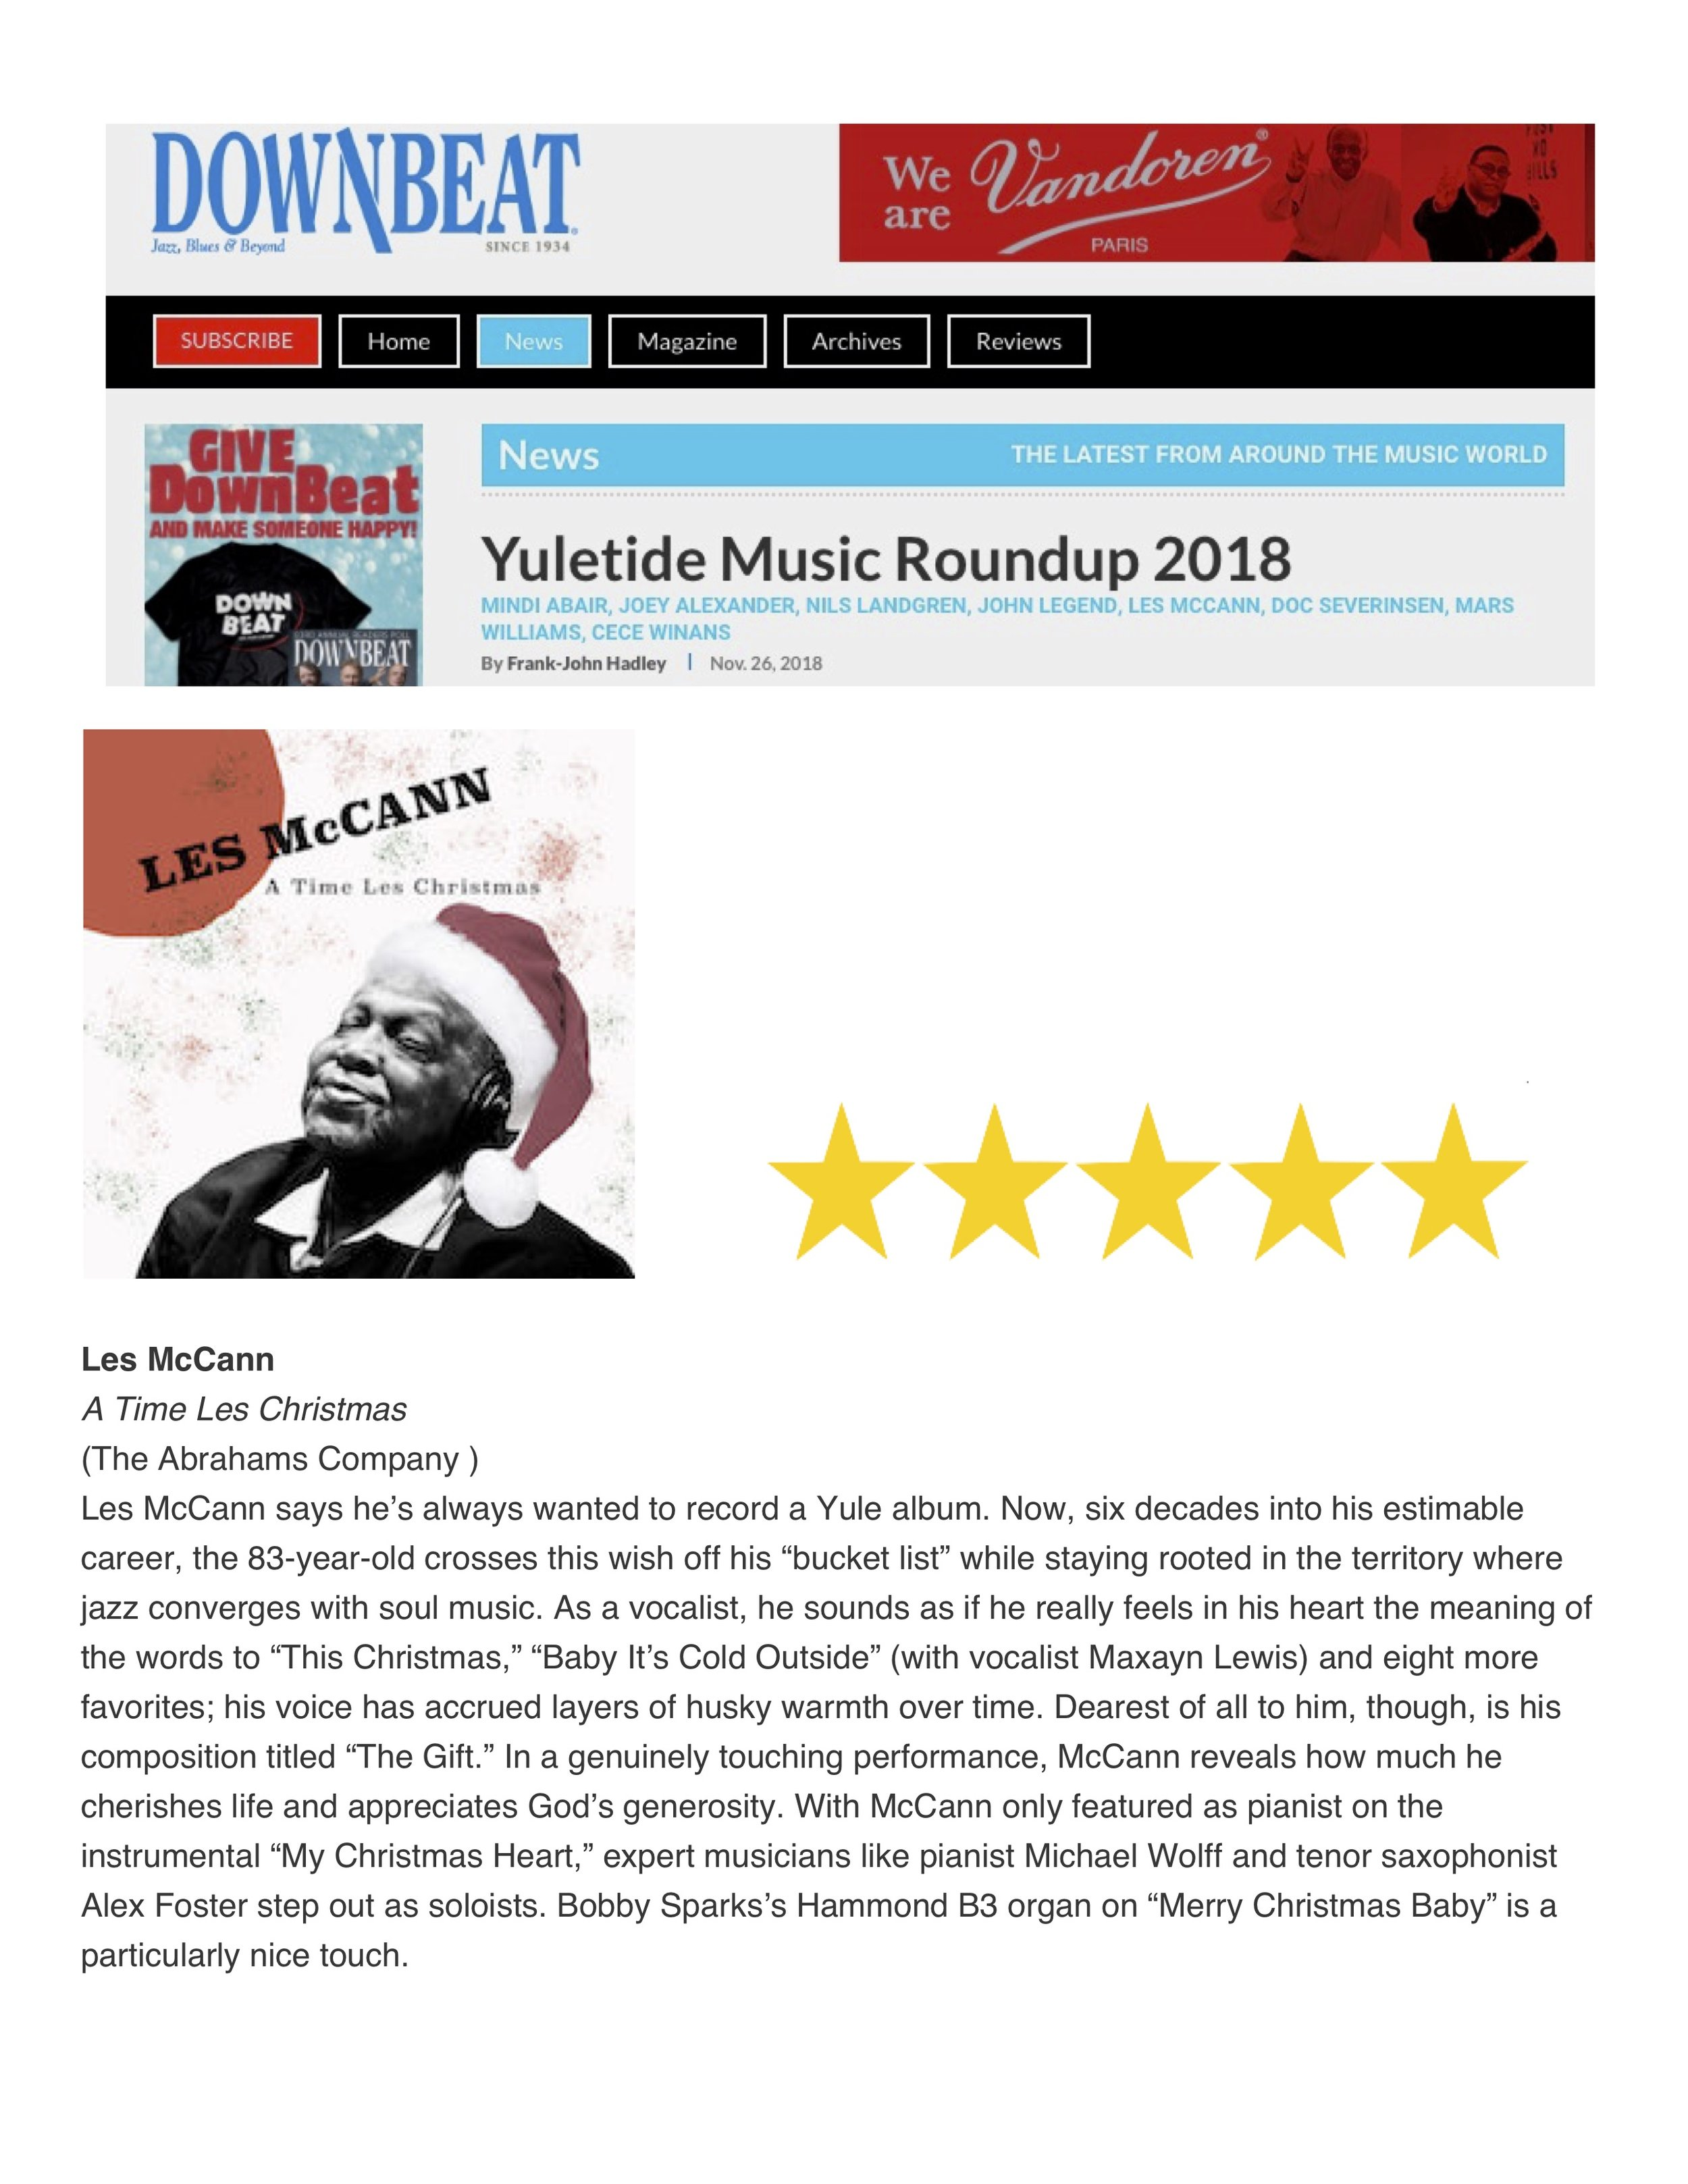 Les McCann Downbeat review.jpg